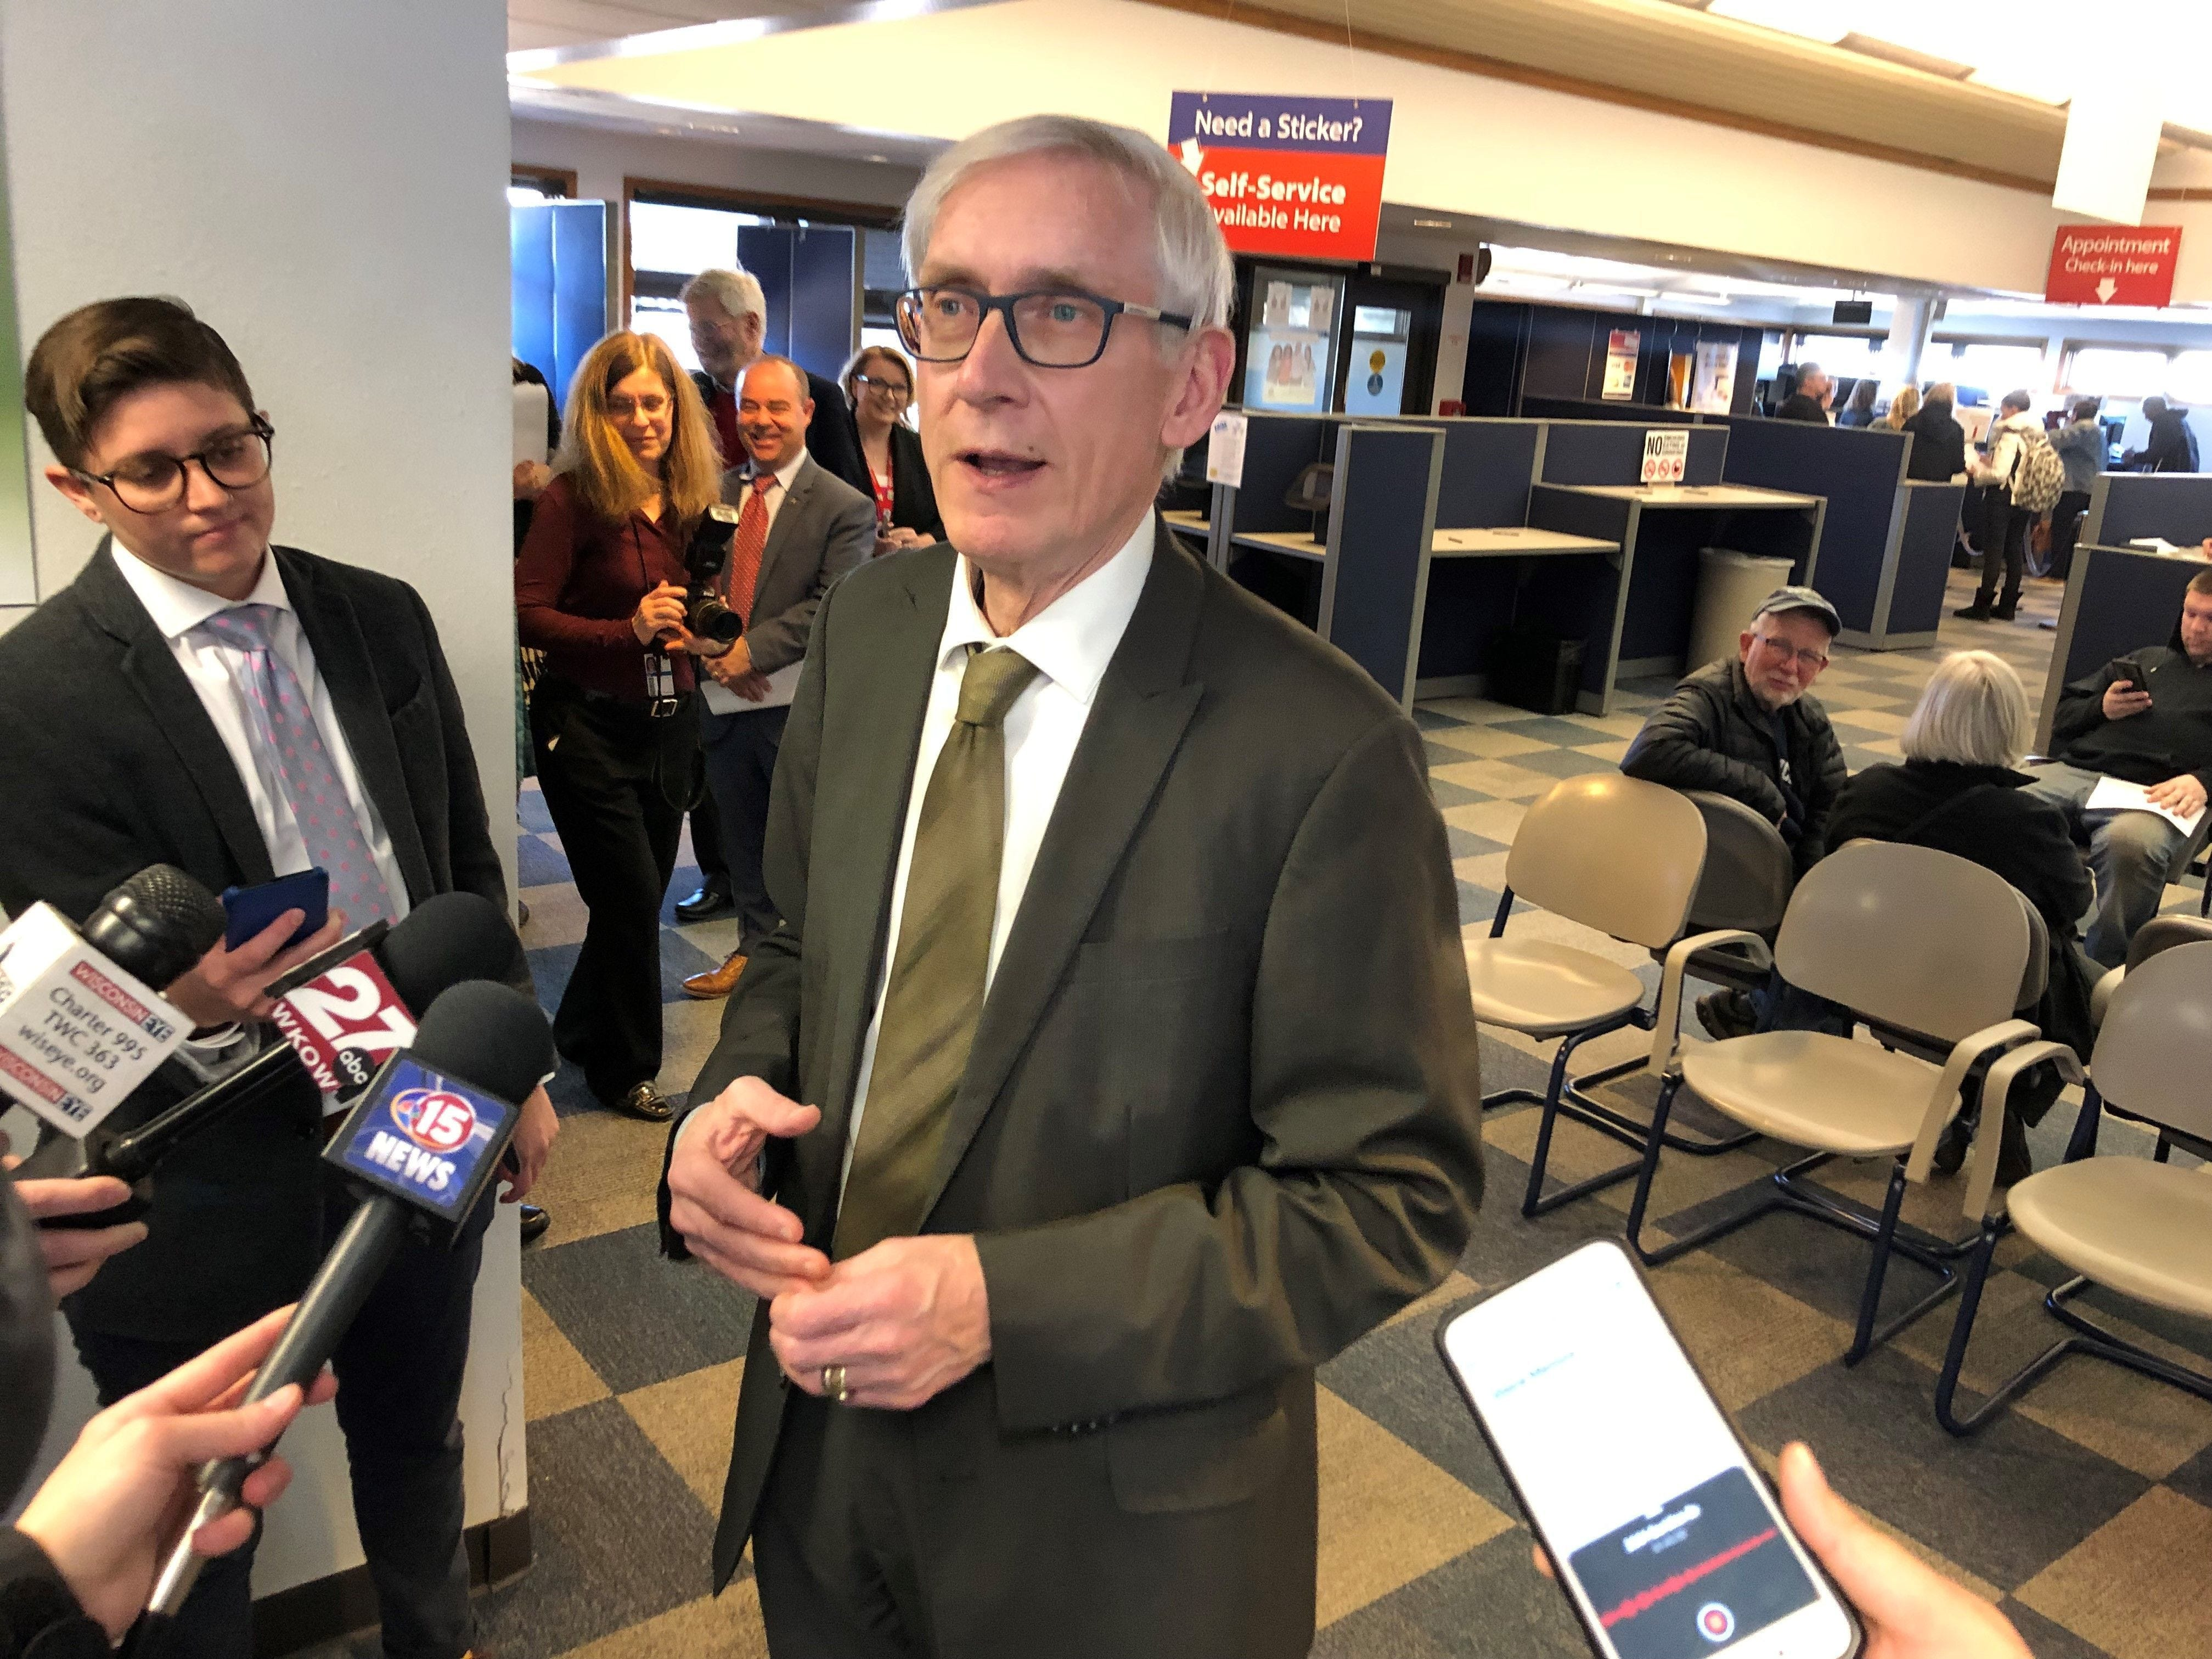 Foxconn must meet job creation goals to get subsidies. Tony Evers says maybe those goals are too high.